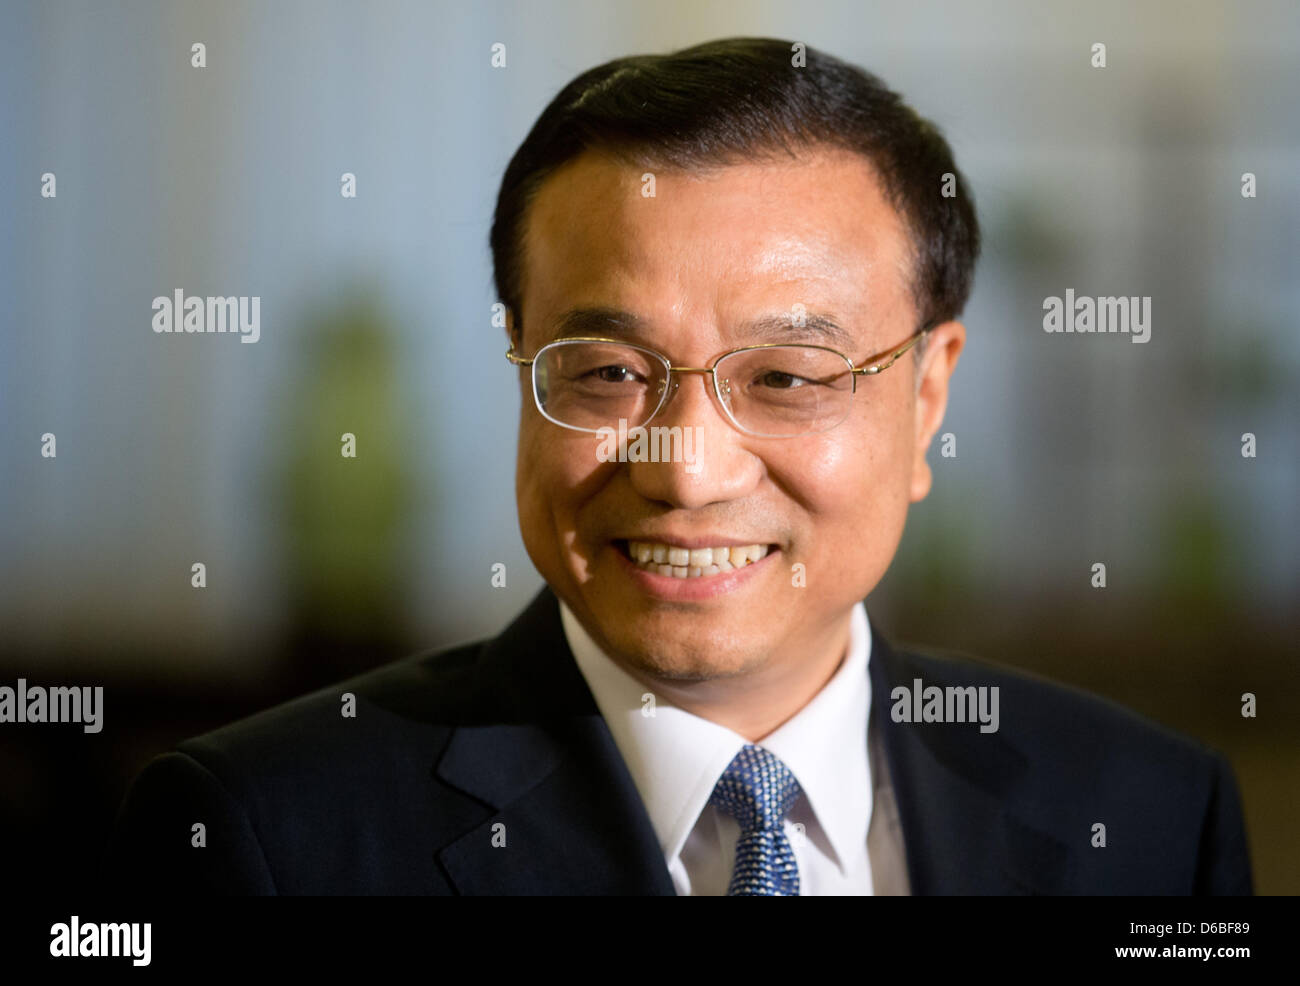 Chinese Vice-Premier Li Keqiang awaits the German Chancellor for the second round of Chinese-German intergovernmental - Stock Image